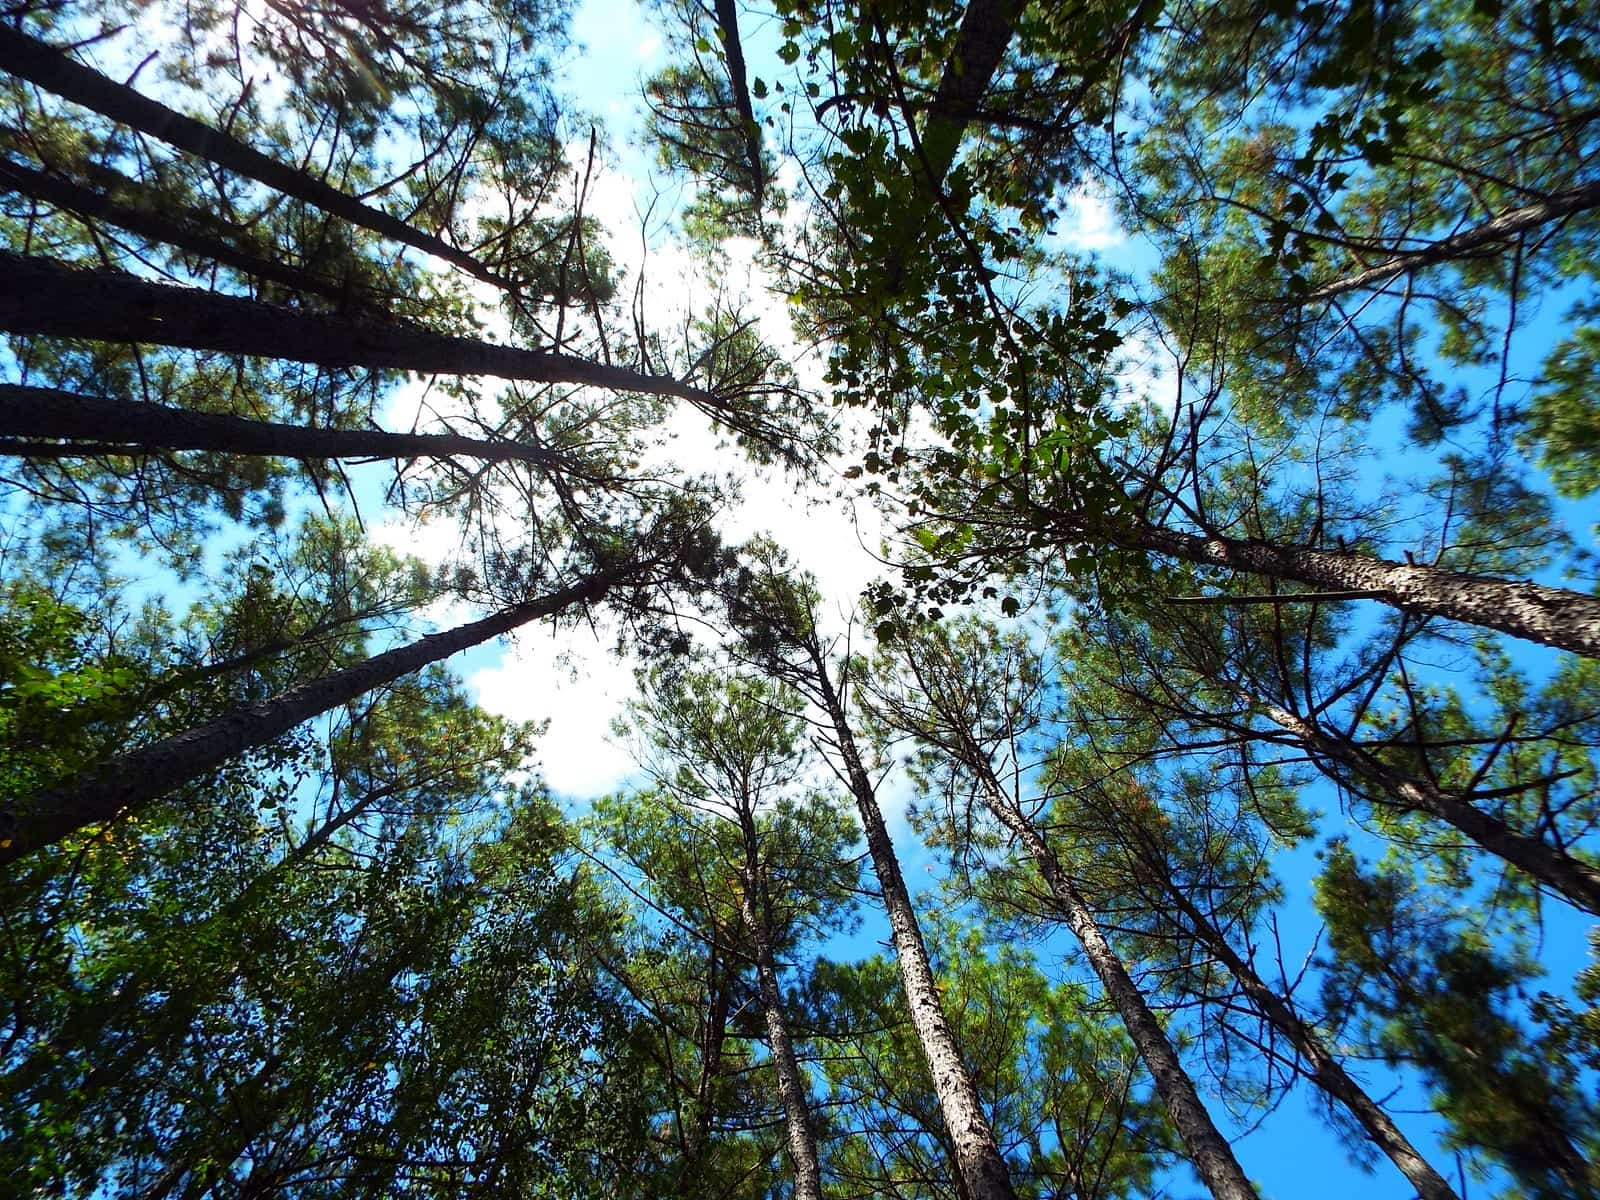 Looking up at the sky through converging Loblolly pine treetops.